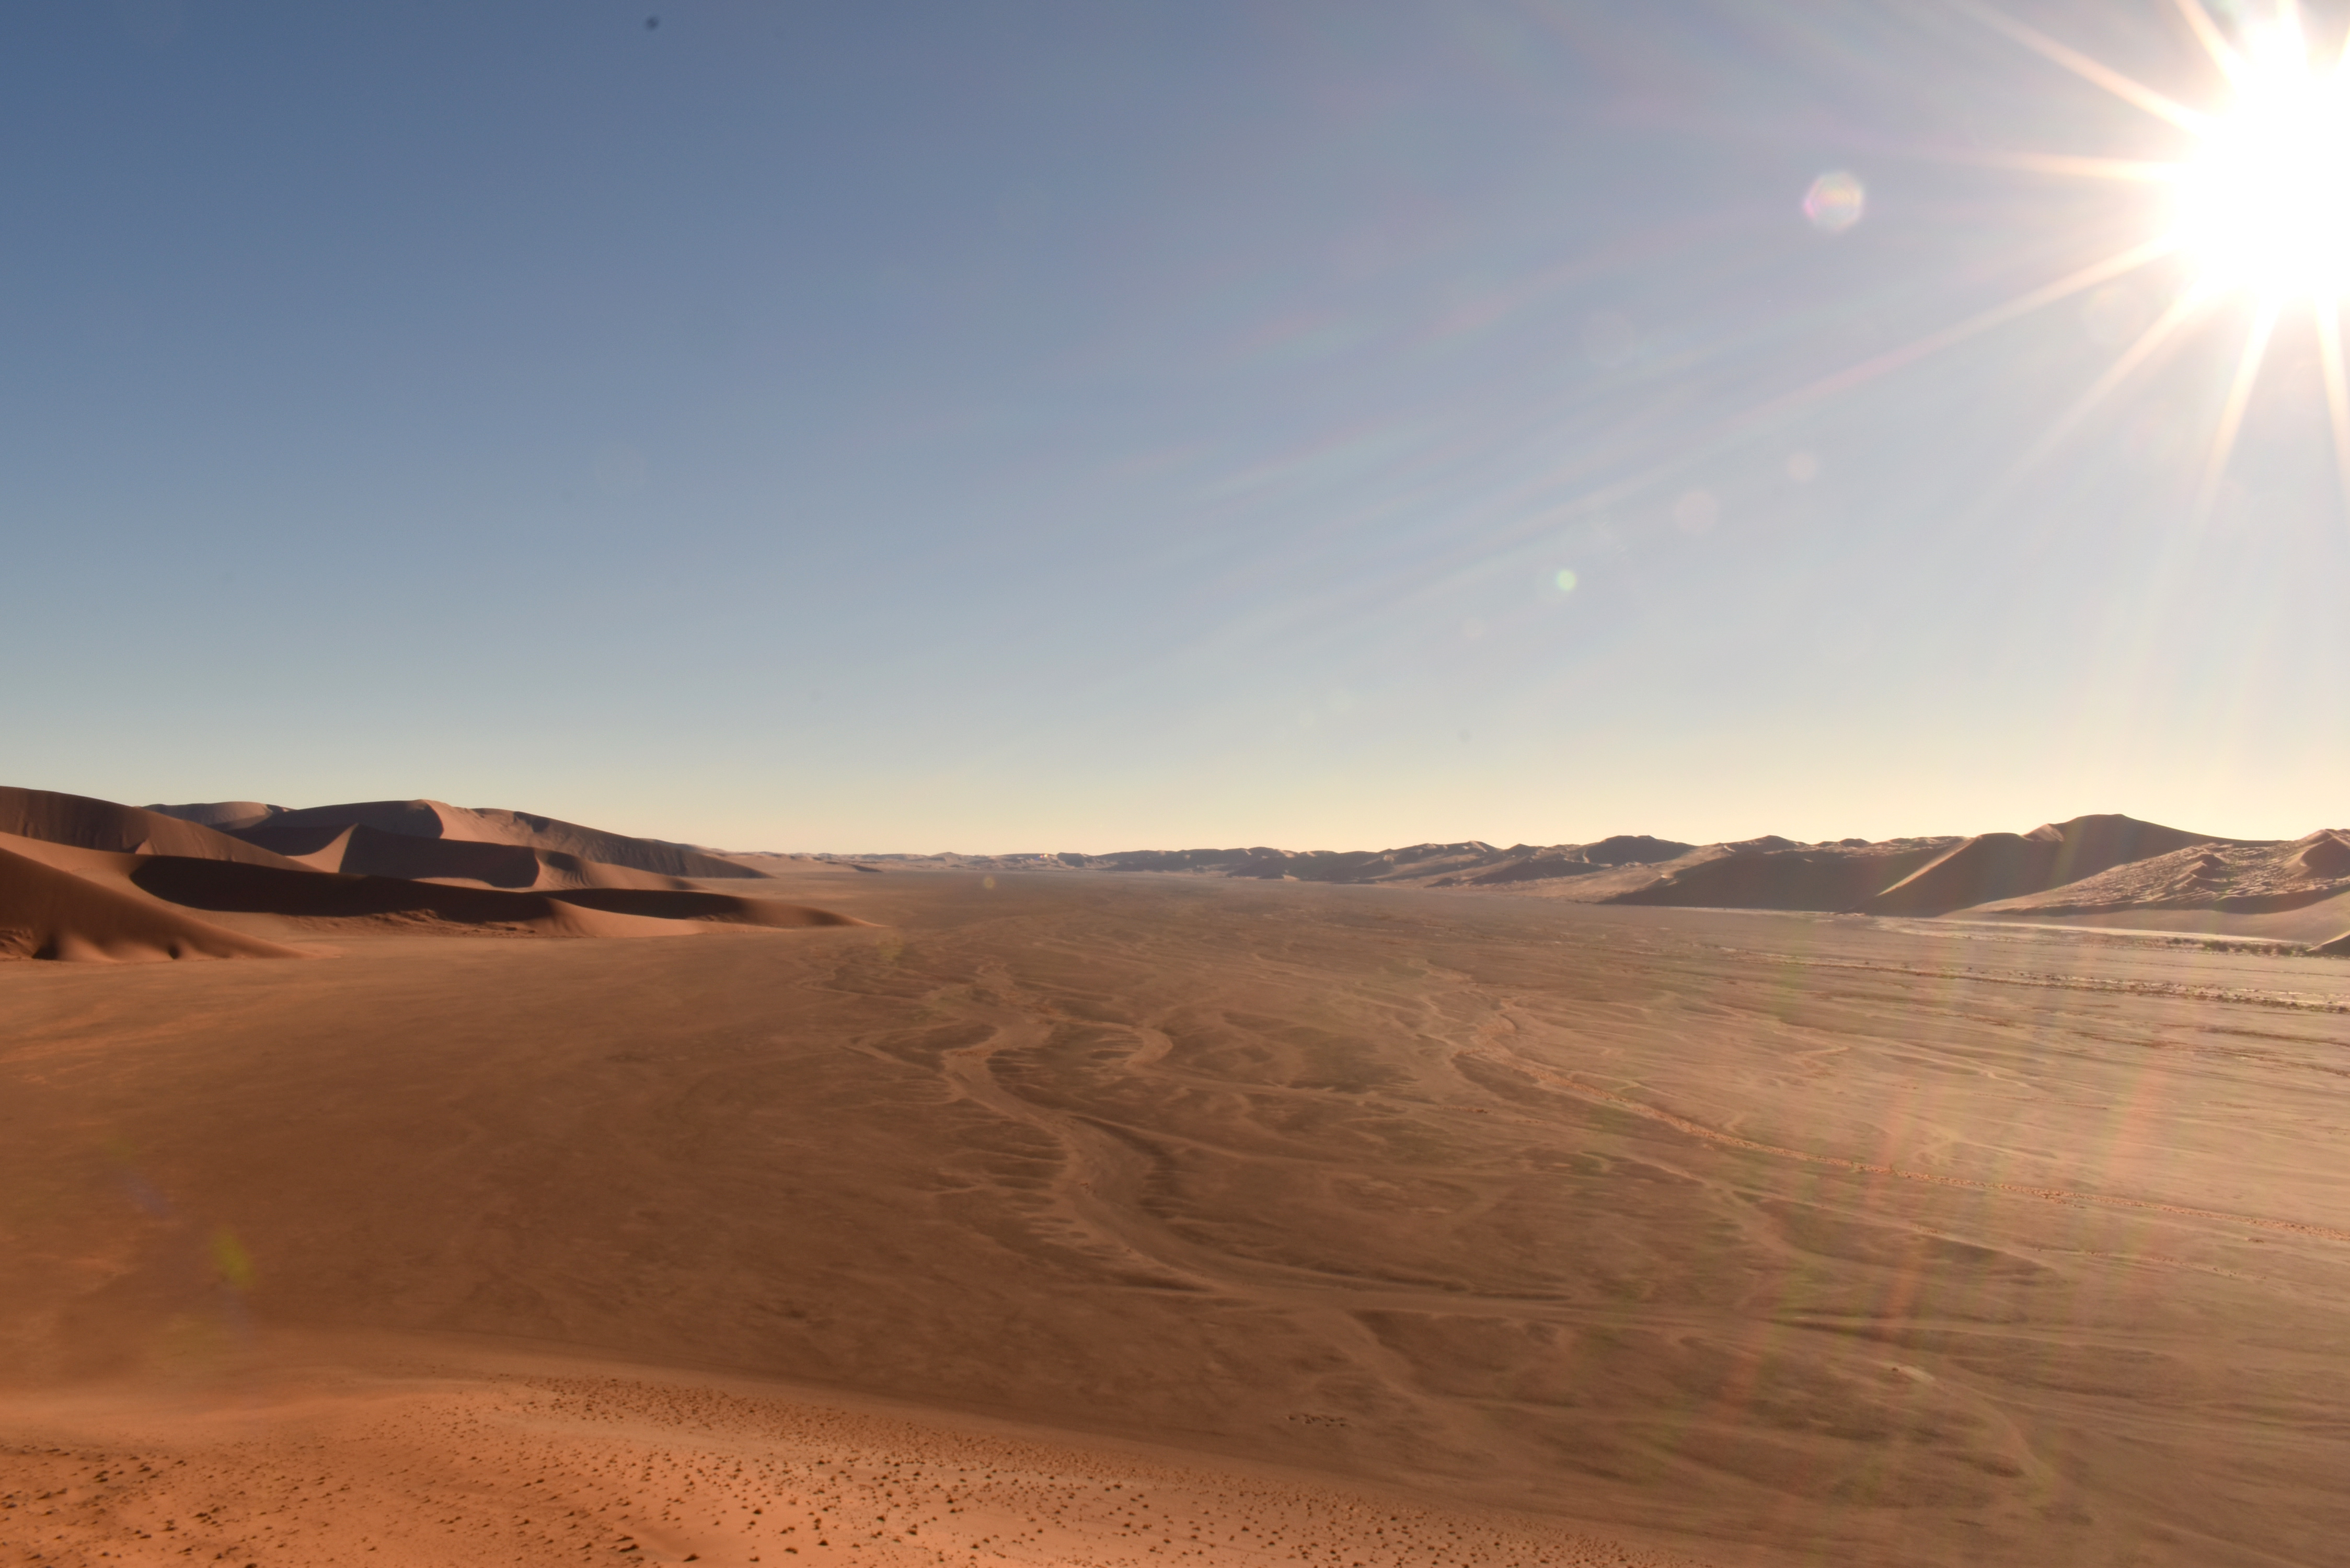 Dry landscape in Namibia. Credit: Dr Callum Munday.